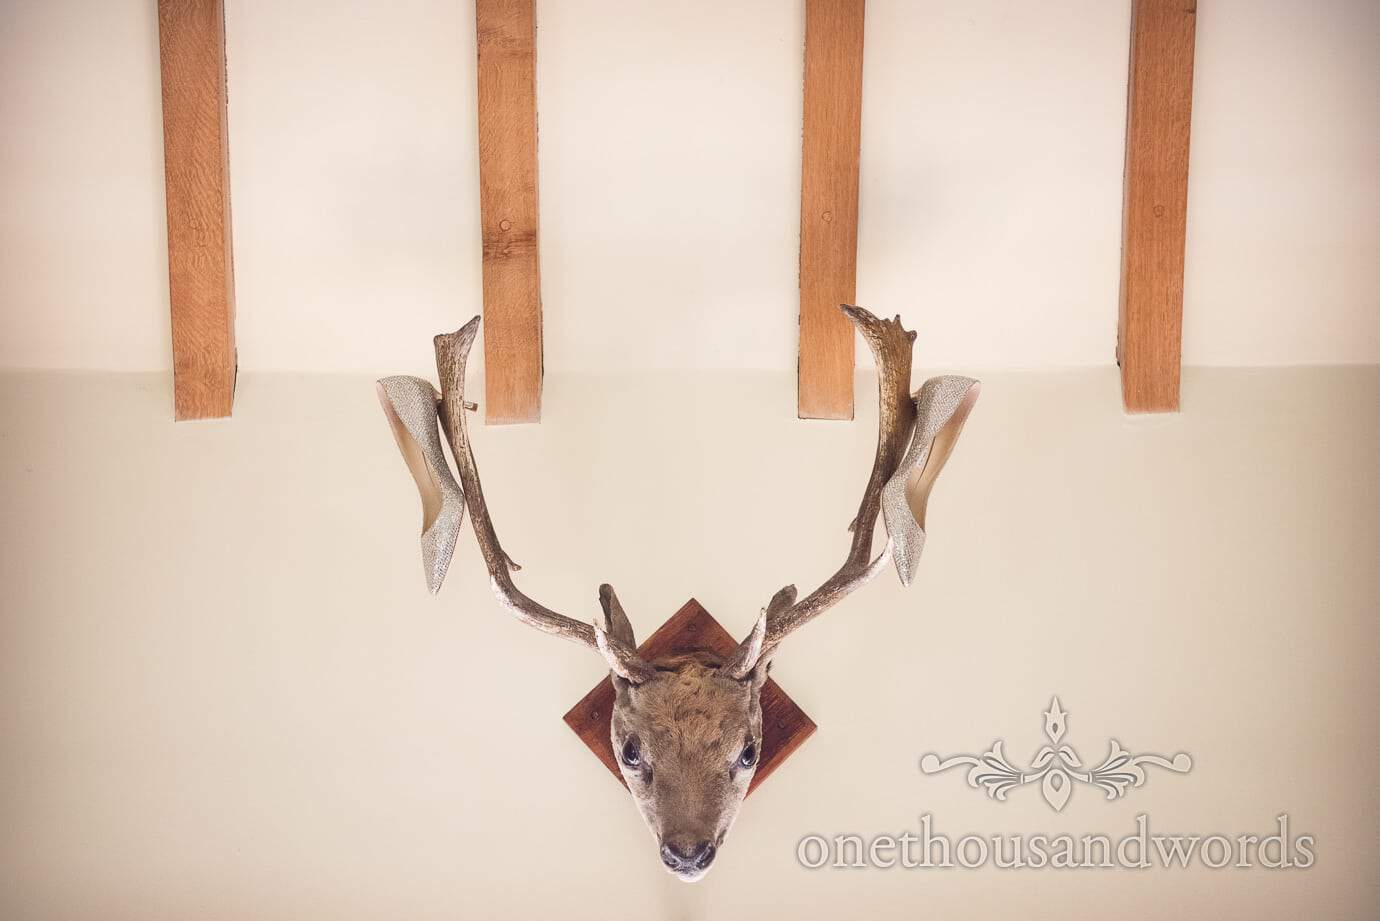 Jimmy Choo custom made Silver Bridal shoes hanging on deer antlers at country wedding